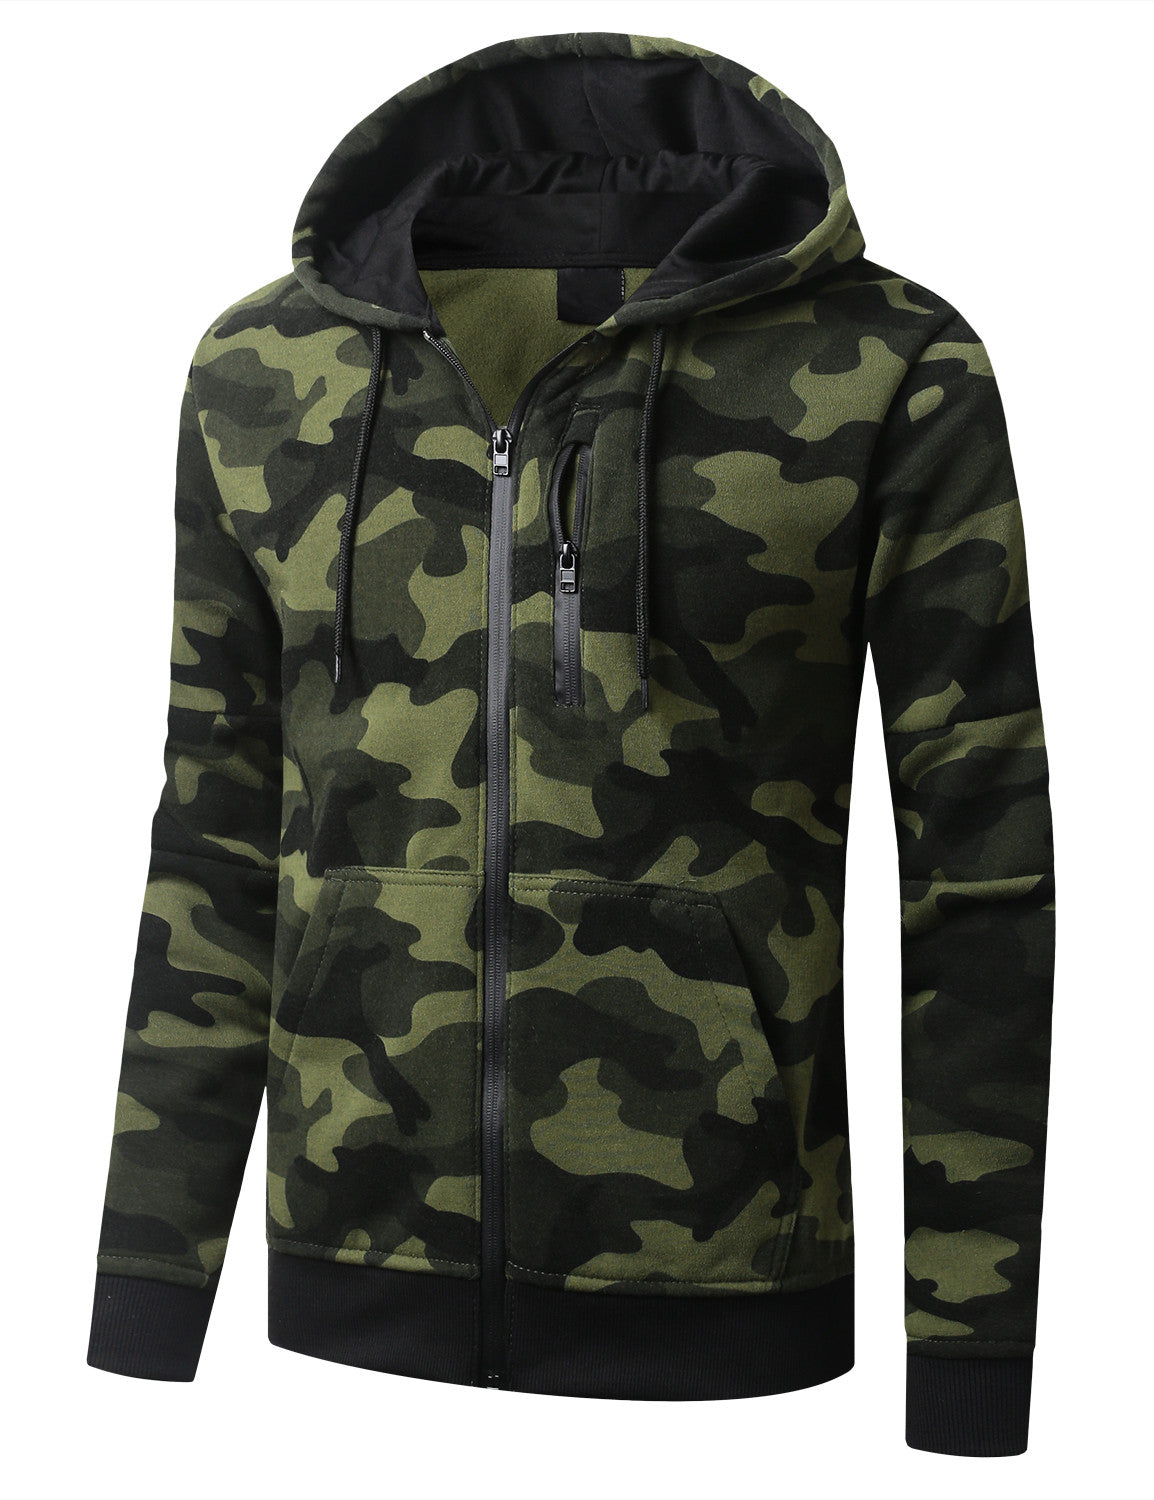 WOODLAND Fleece Full Zip Up Hoodie Jacket  - URBANCREWS